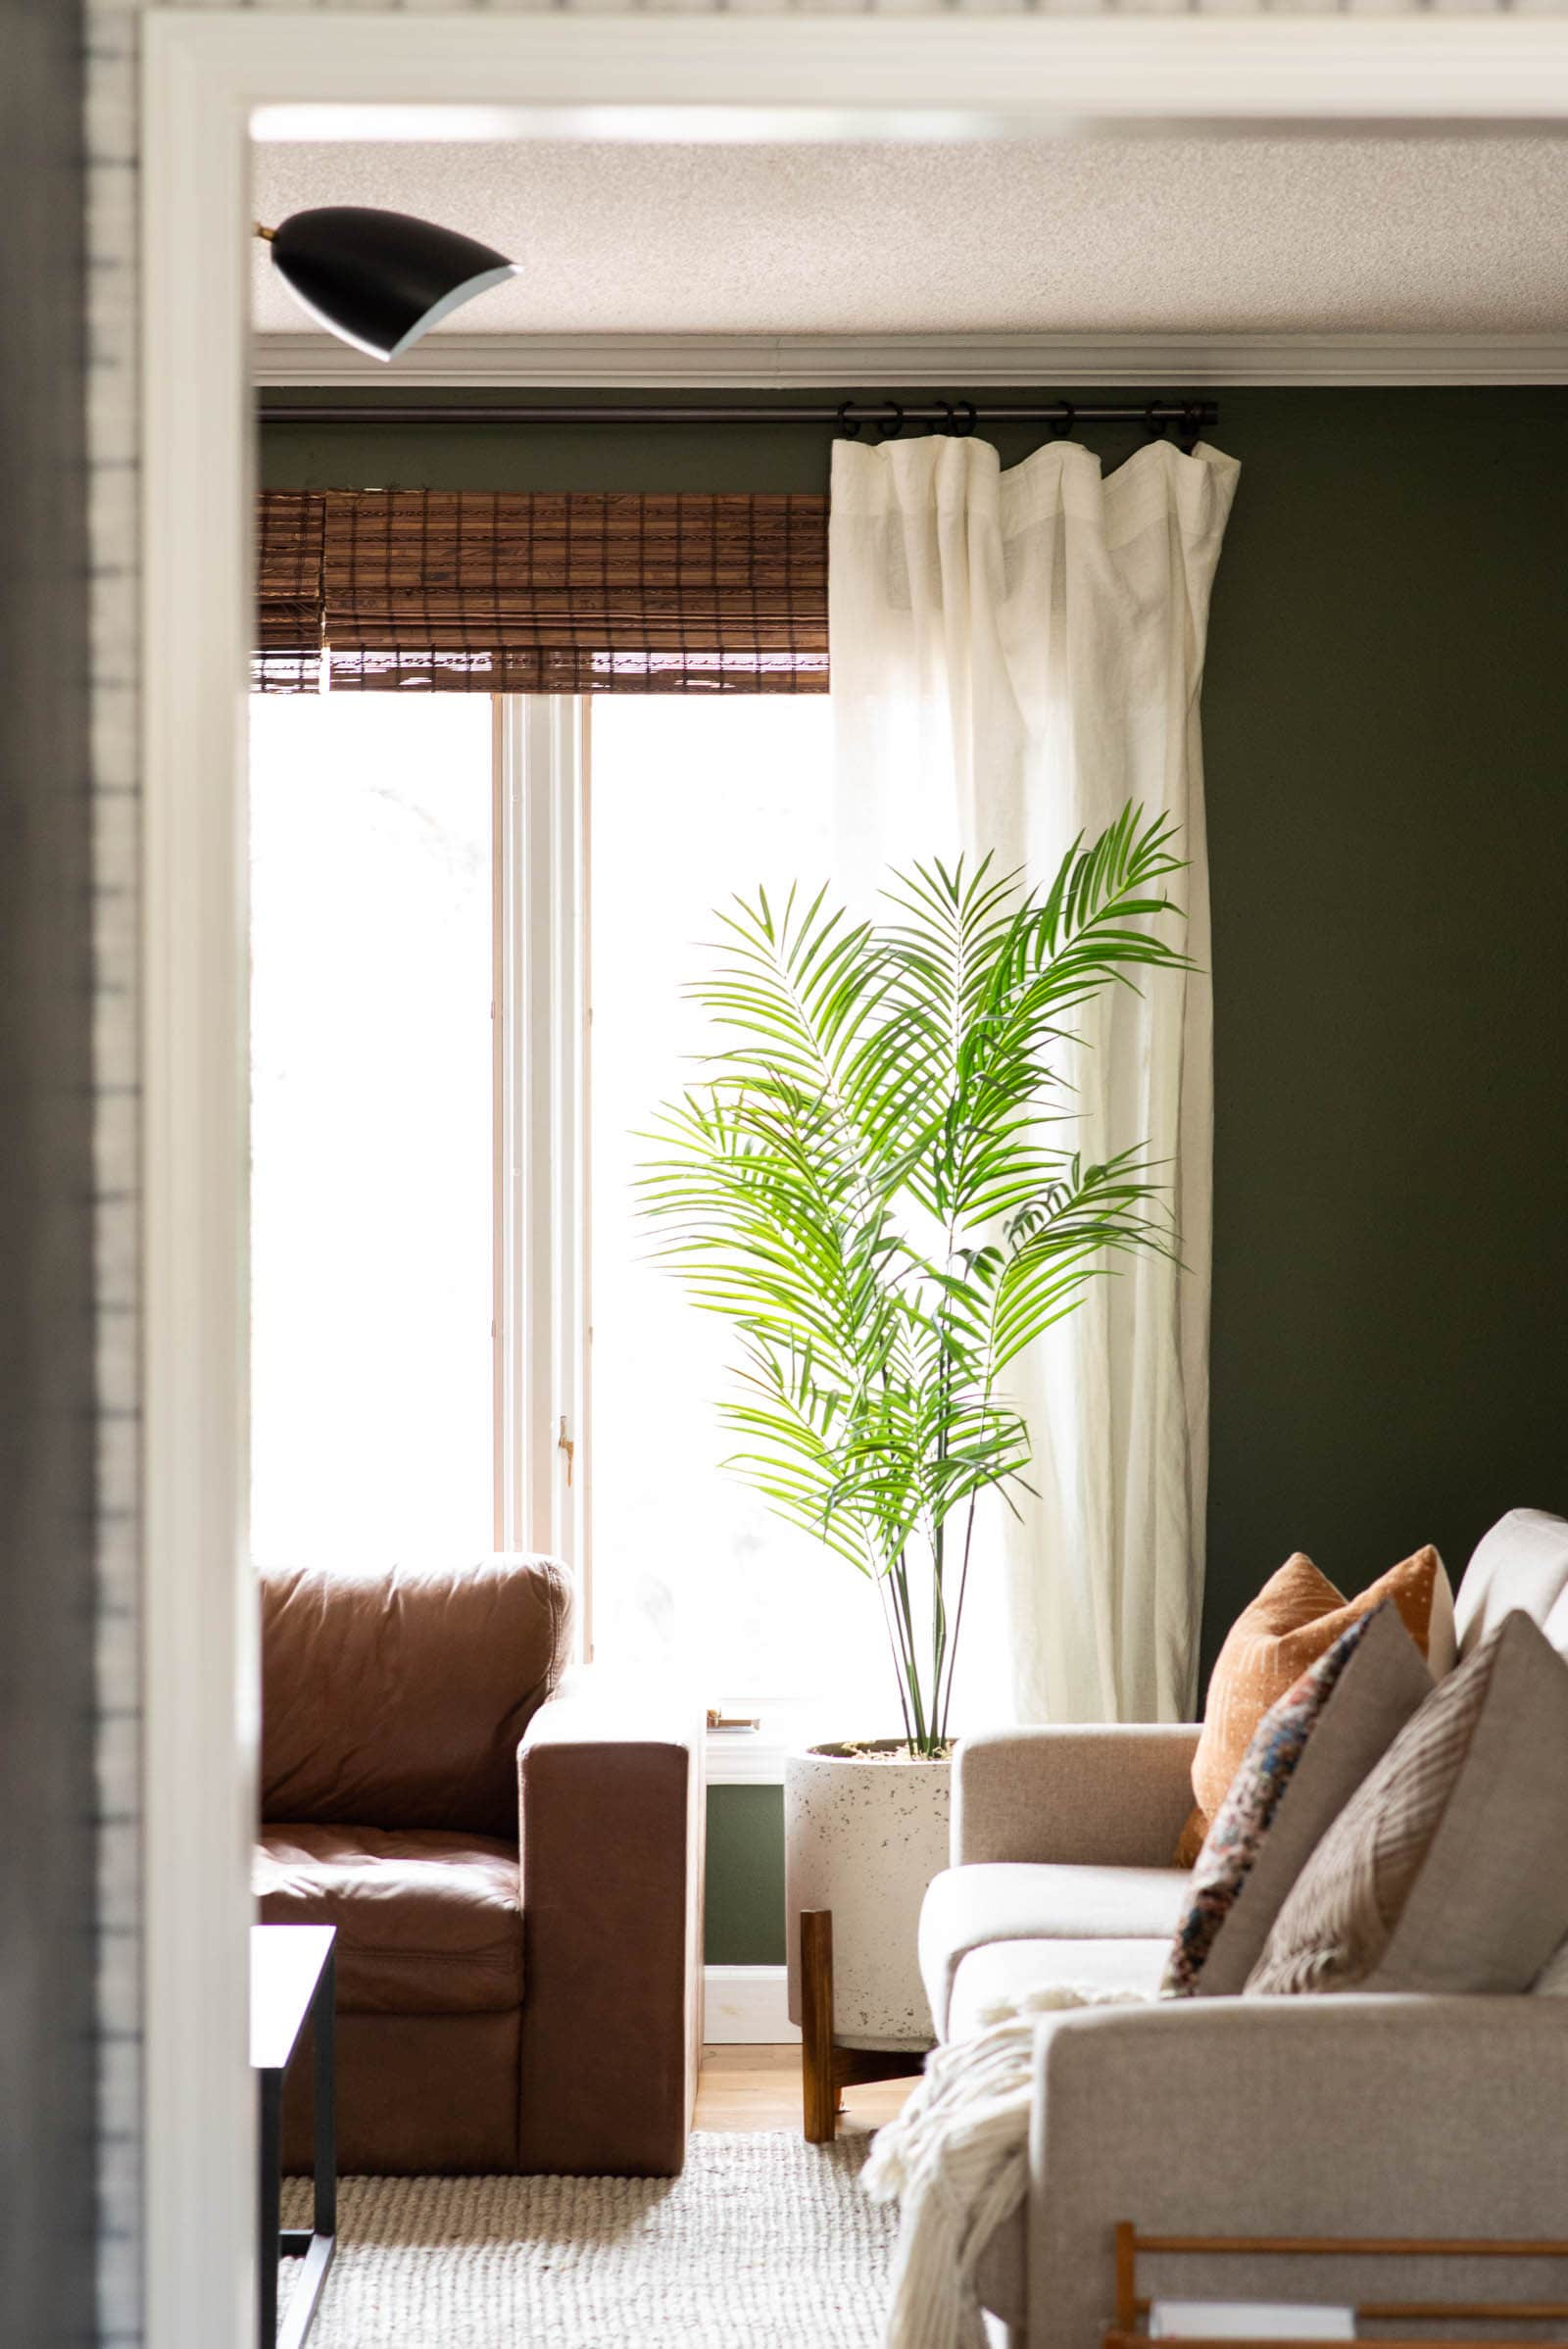 Living Room Window with a plant and a leather couch in front.